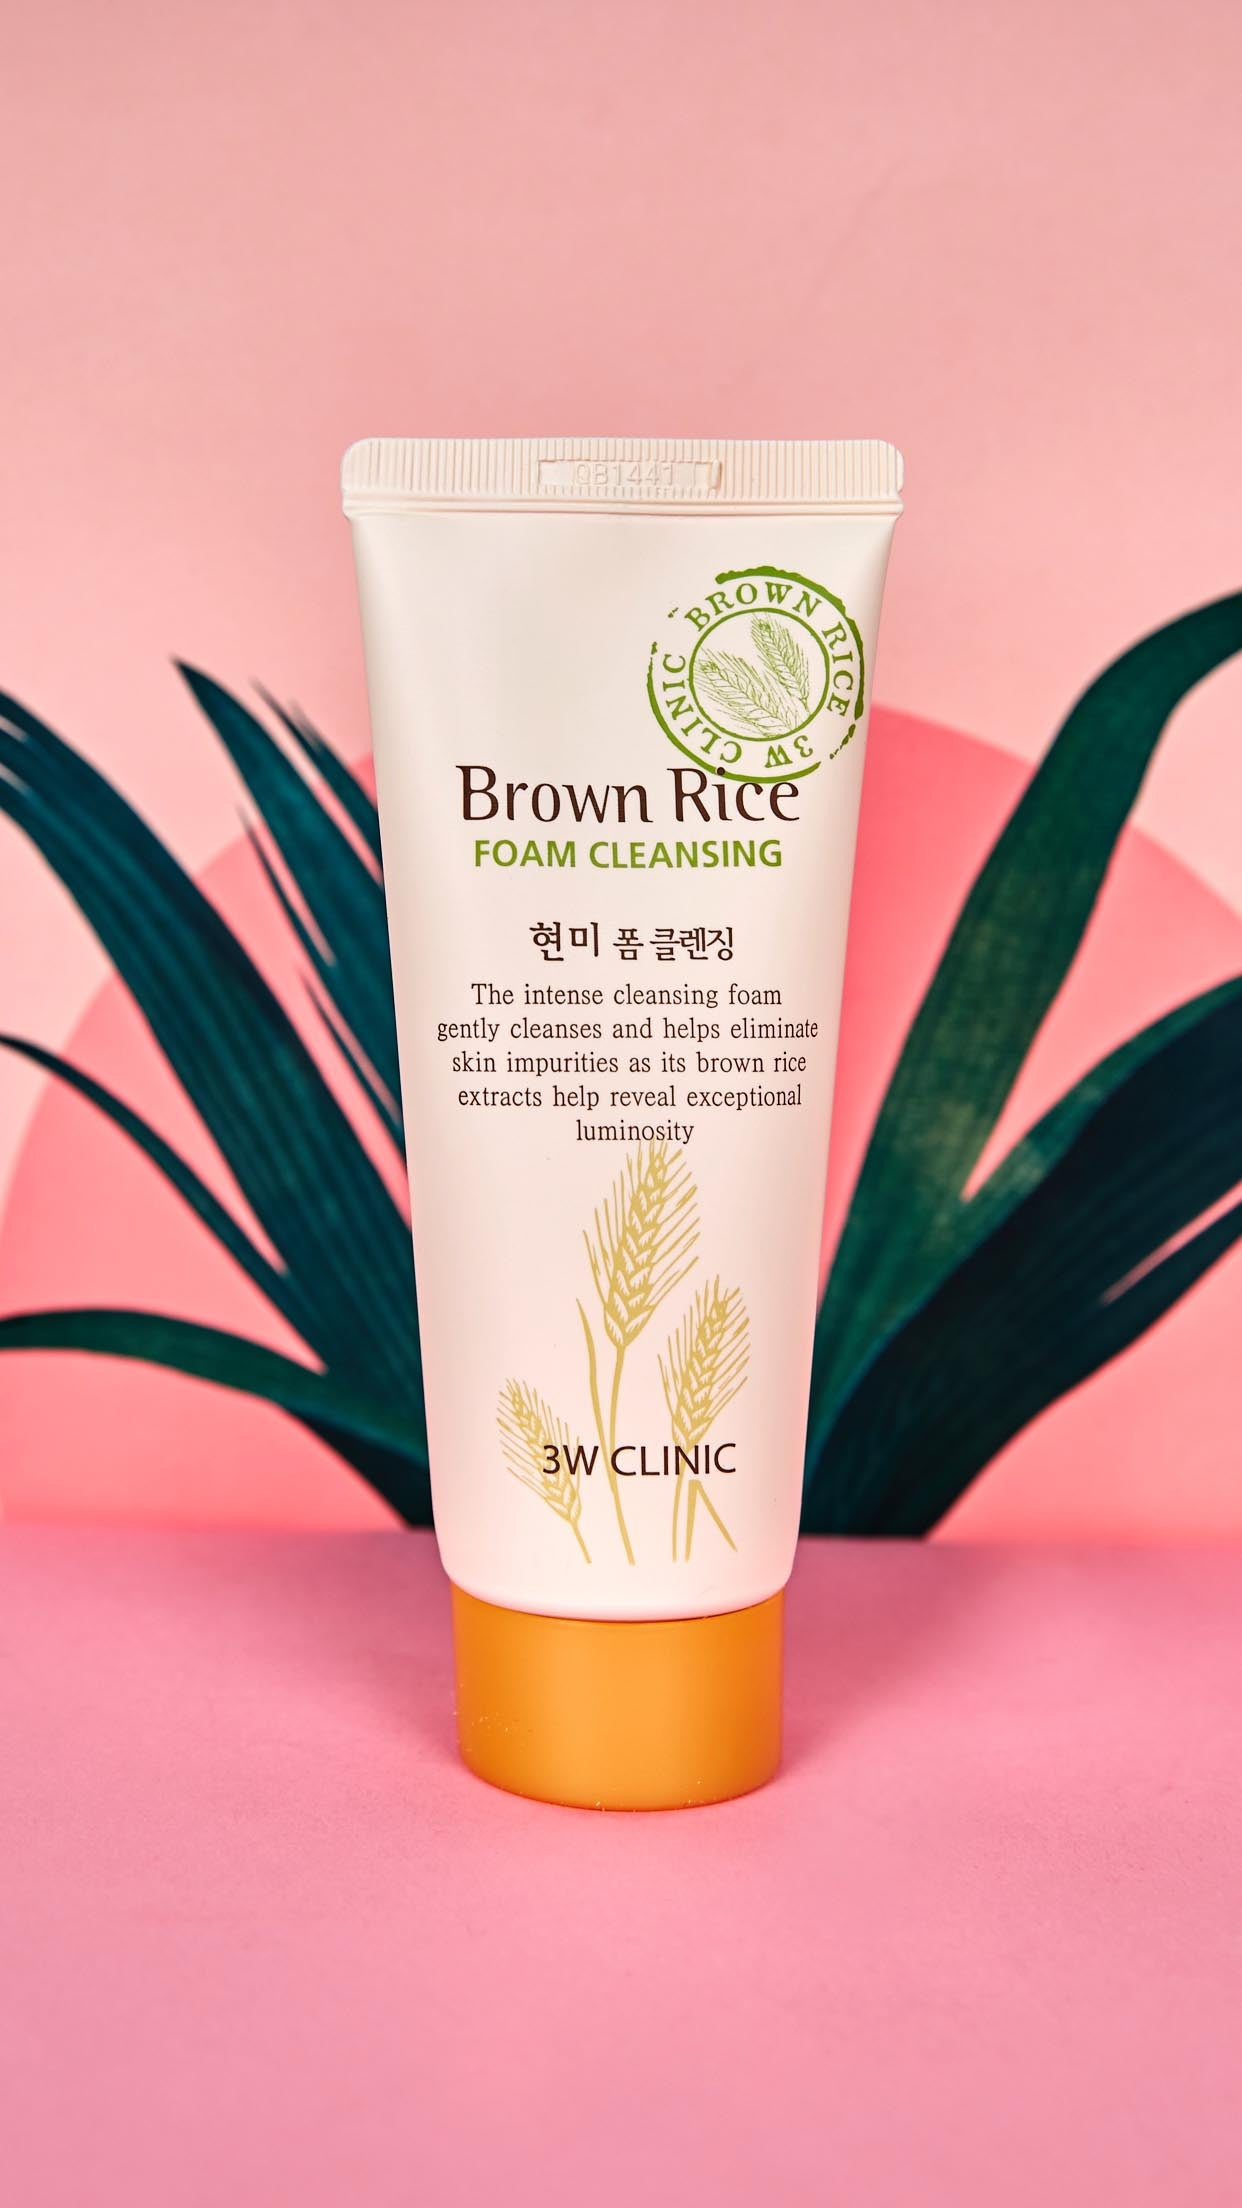 Brown Rice Foam Cleanser